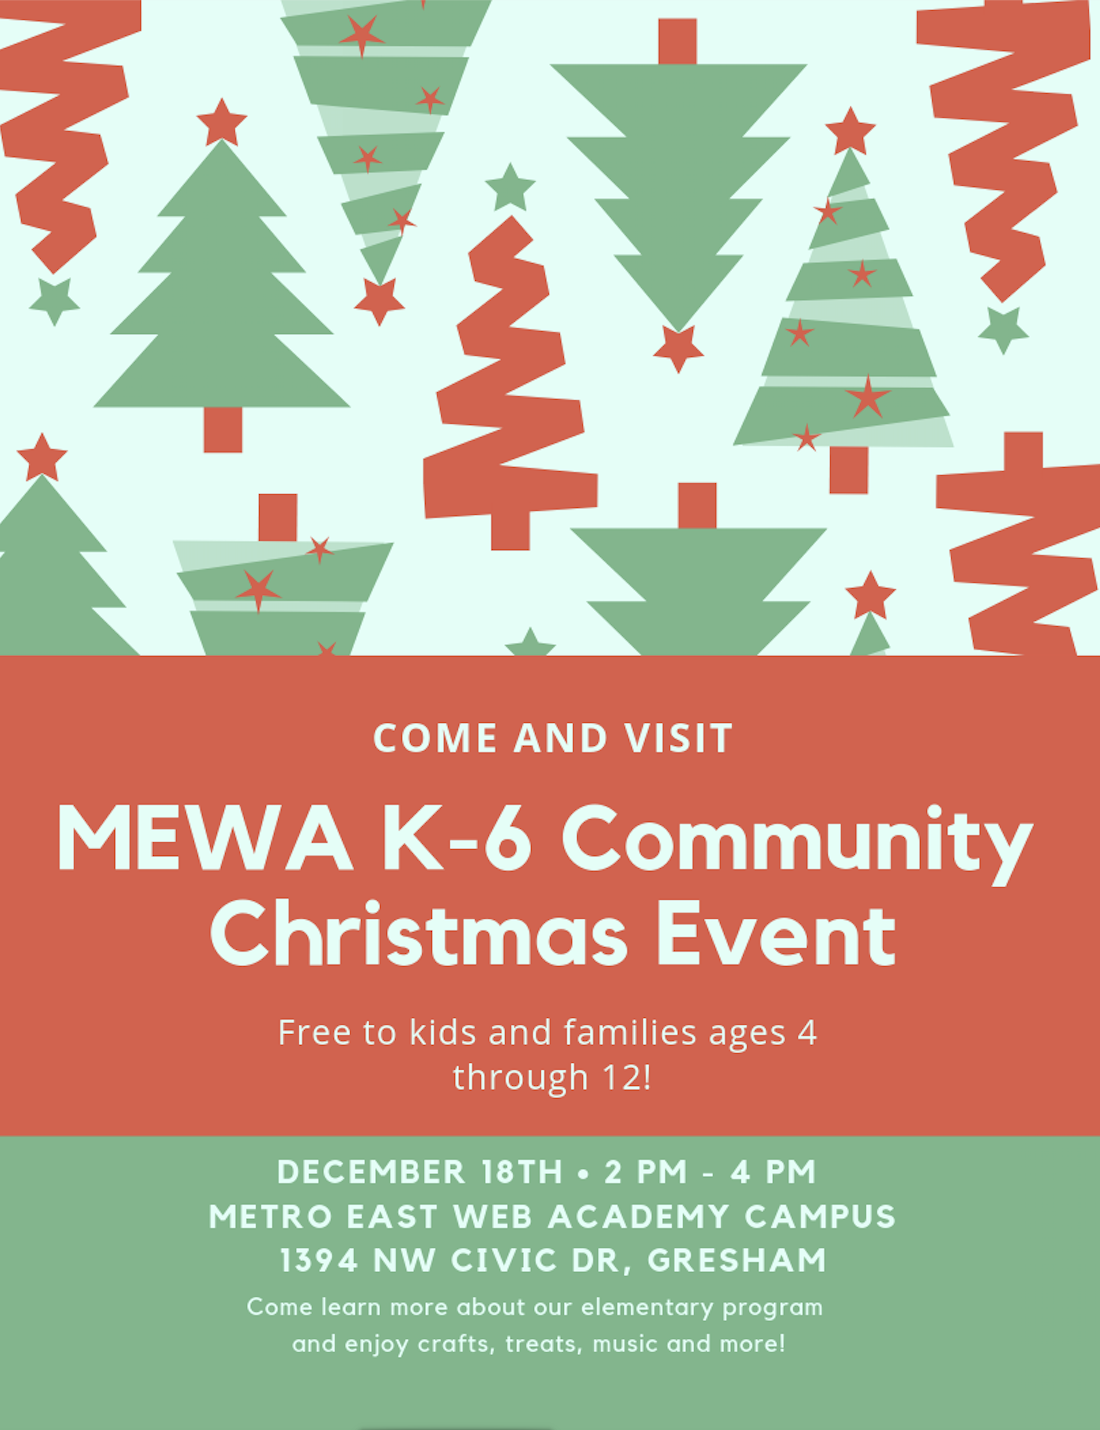 For more information, email us at info@mewebacademy.org